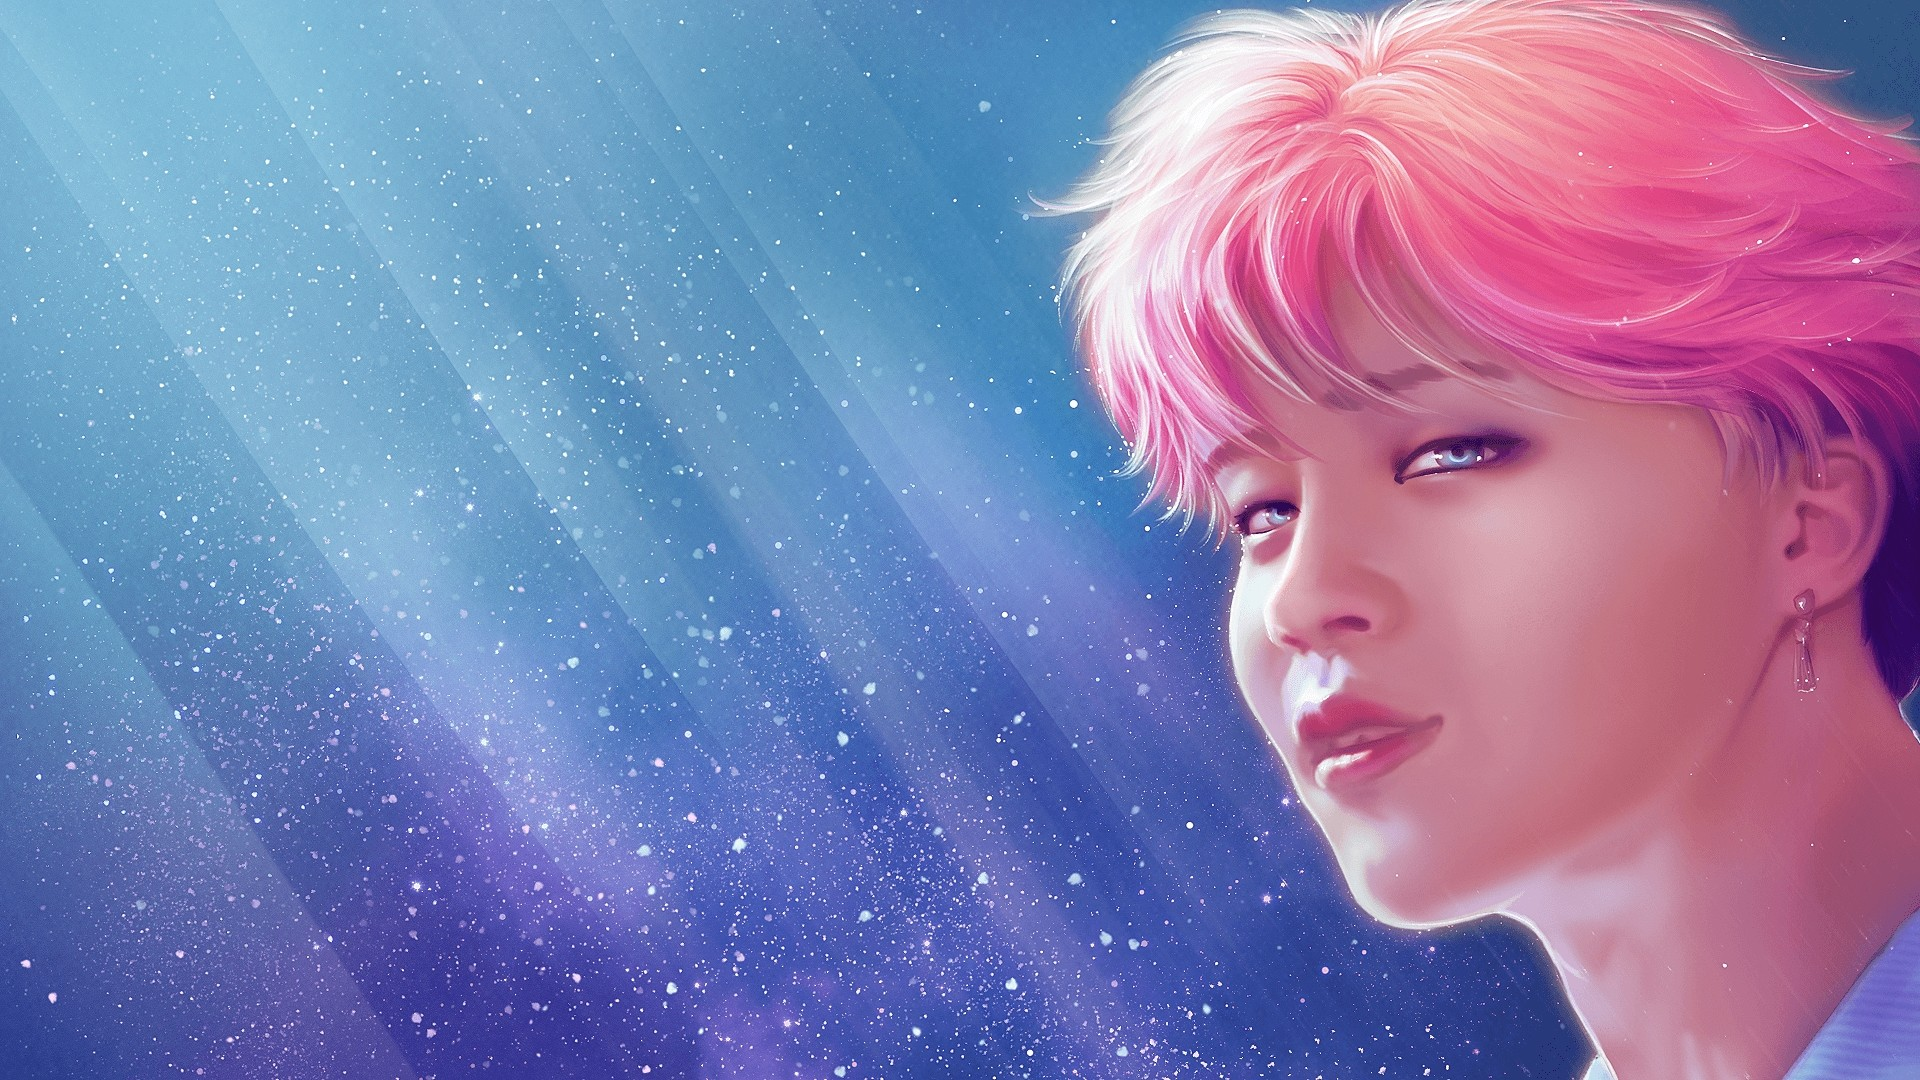 Jimin hd desktop wallpaper